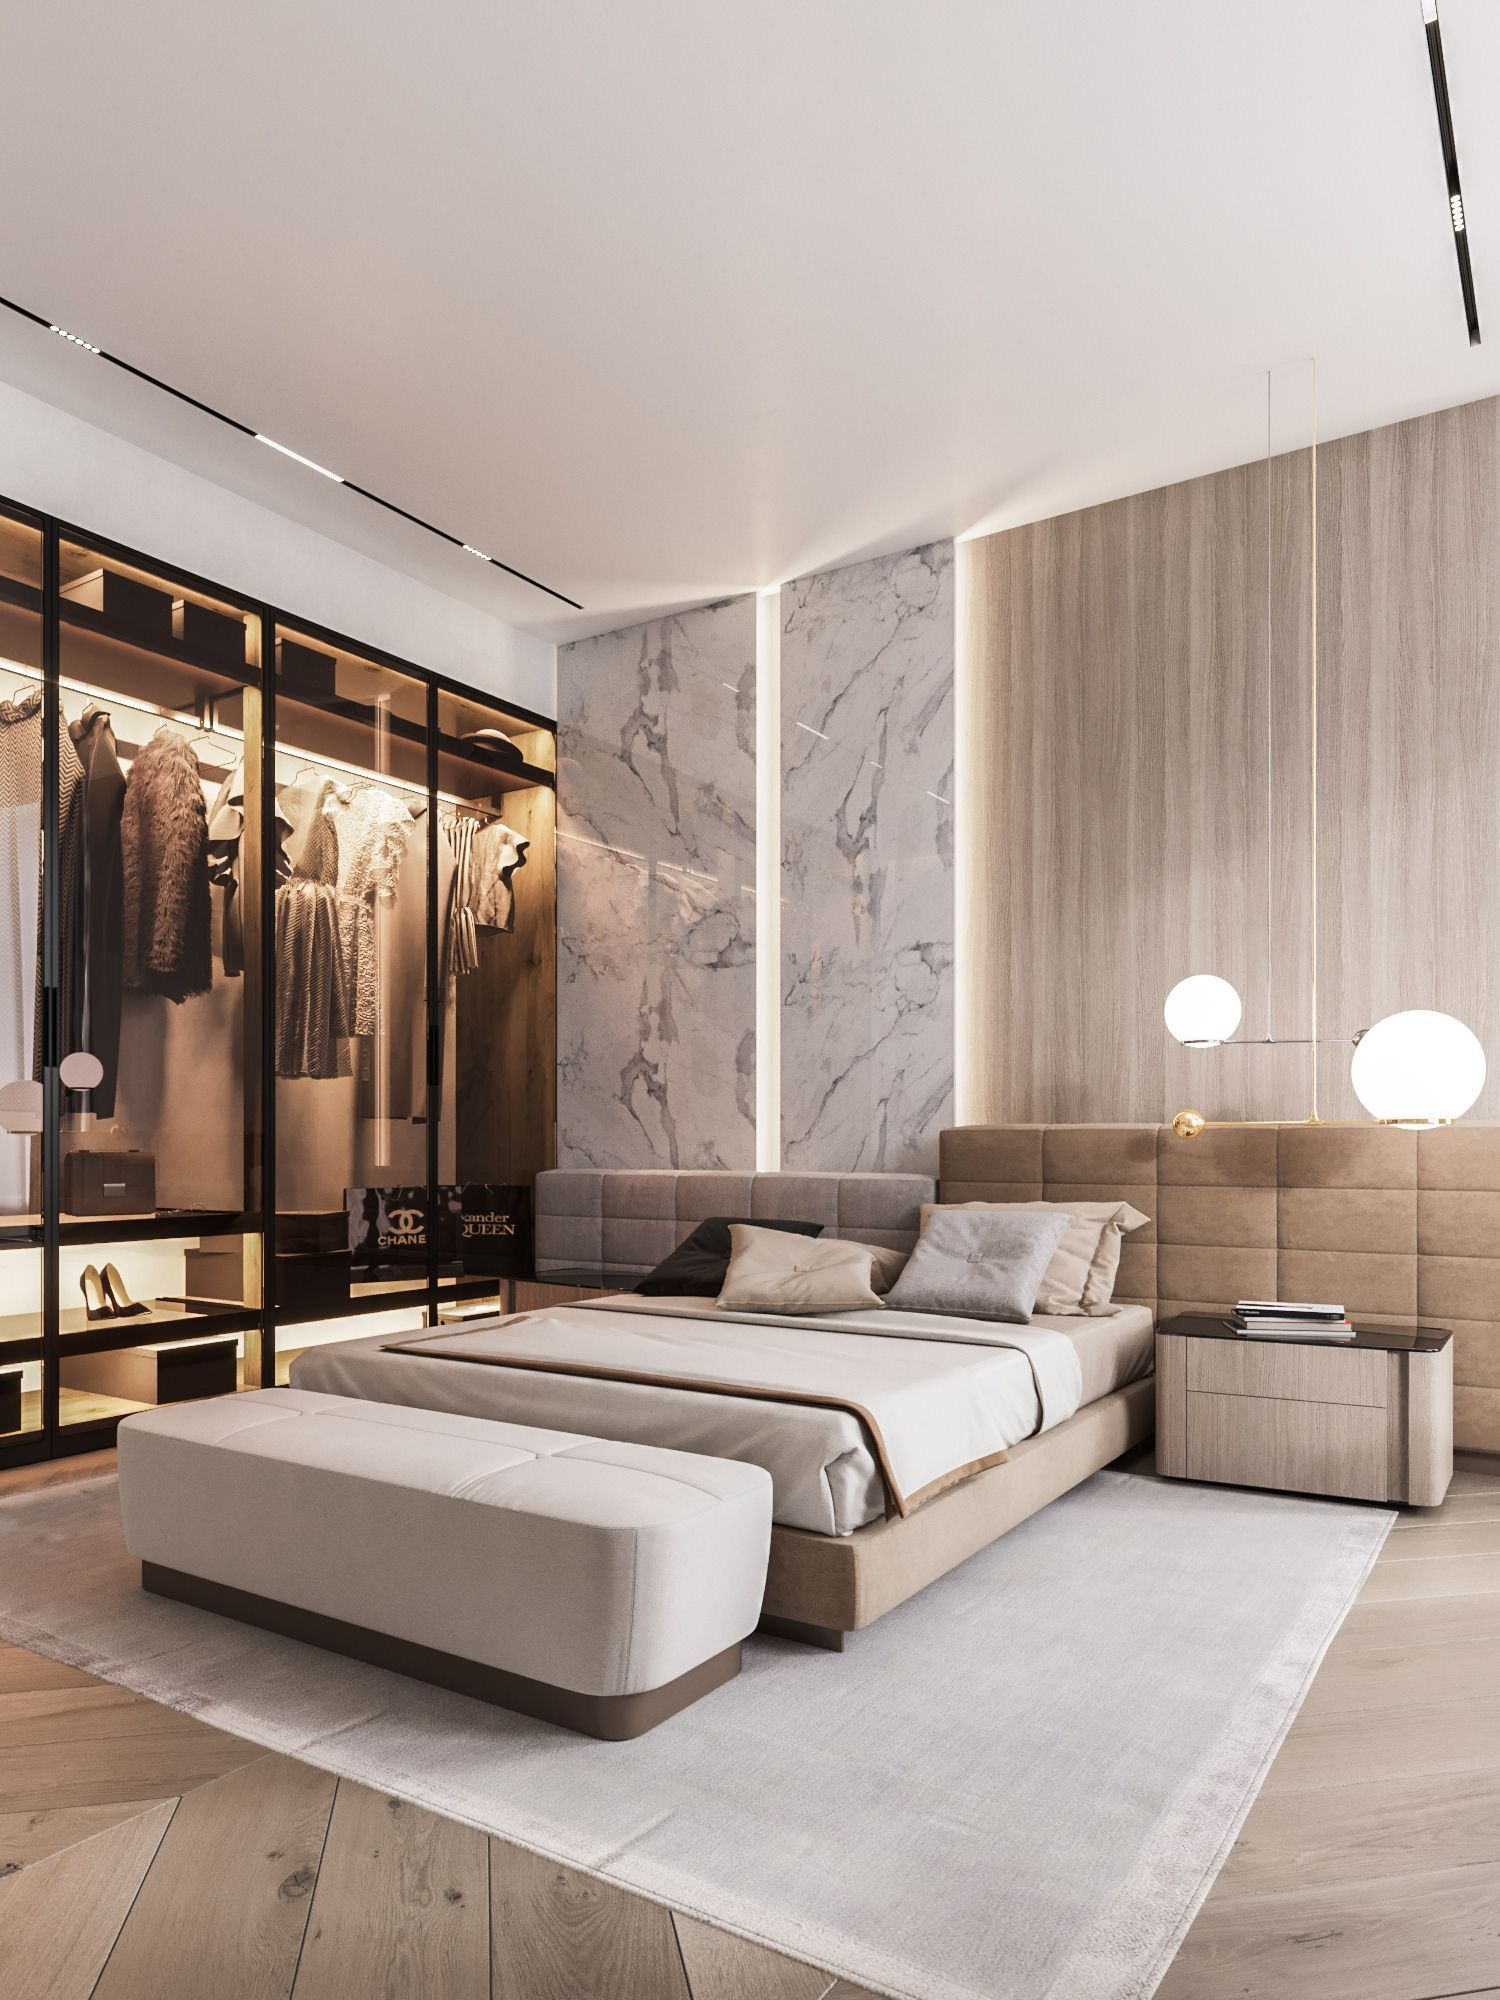 Before Starting Your Next Interior Design Project Discover With Luxxu The Best Modern Furniture And Li Luxurious Bedrooms Luxury Bedroom Design Bedroom Design